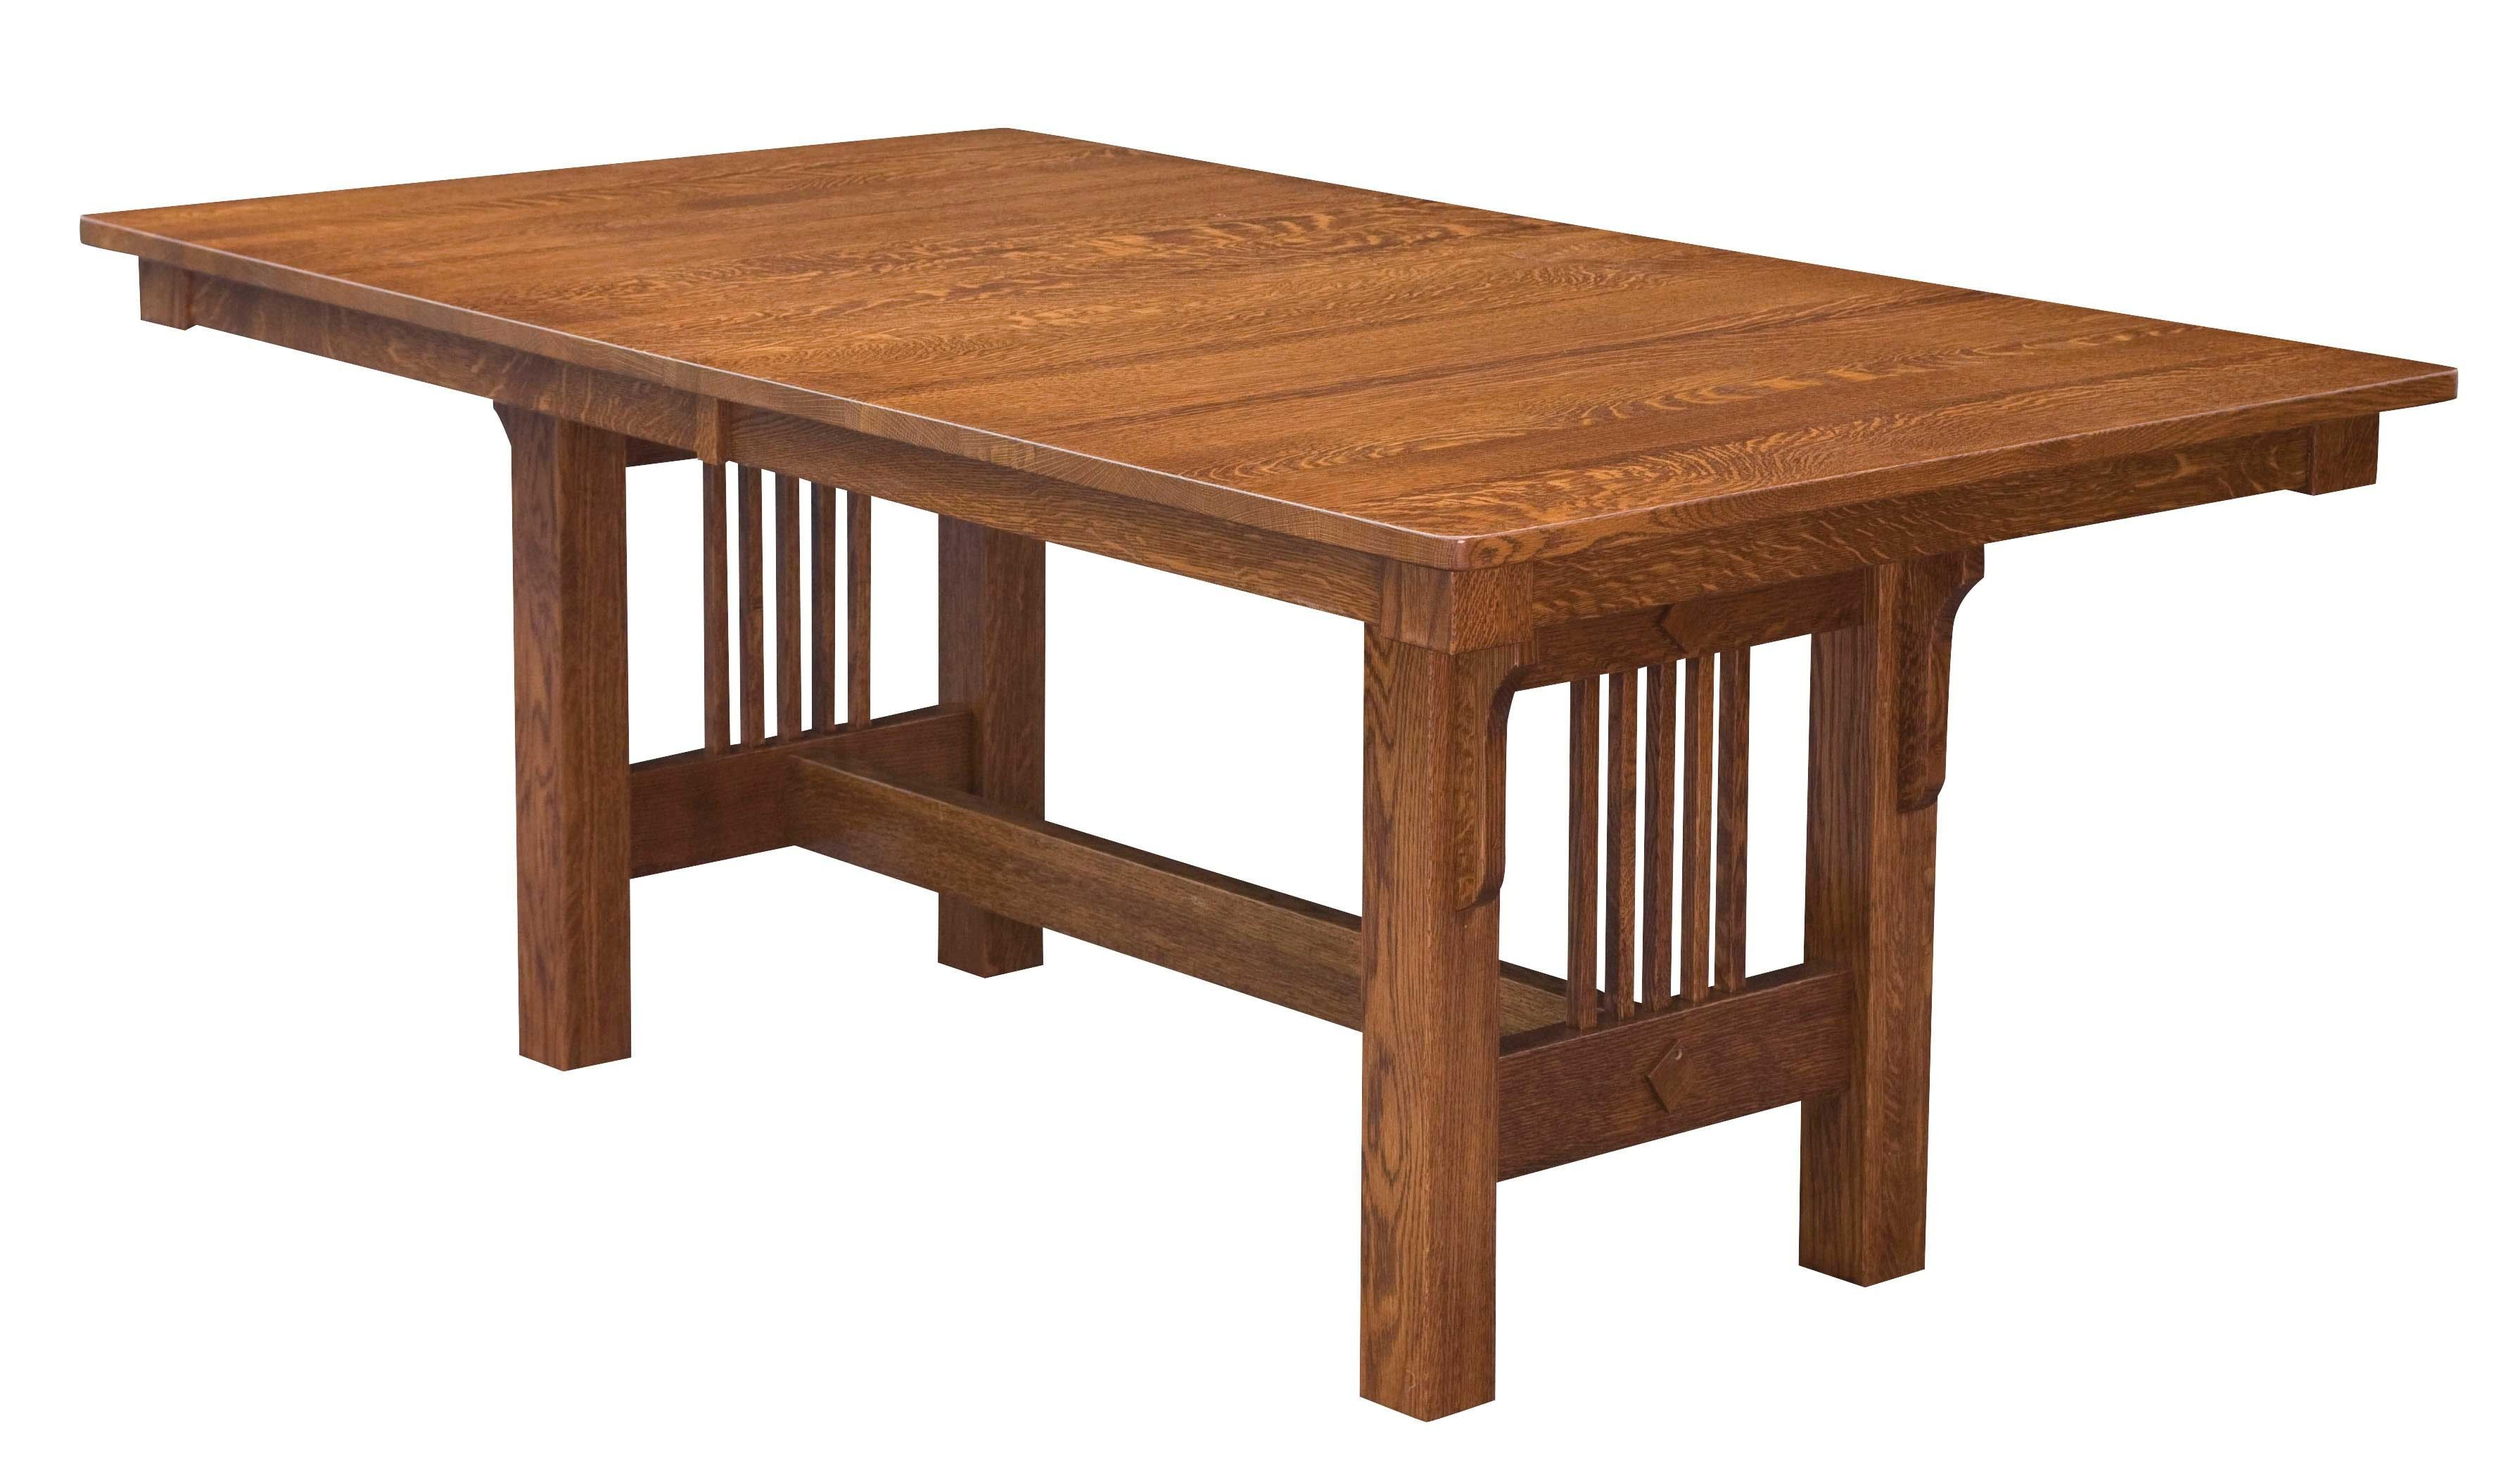 Mission Trestle Table 42 X 60 66 Dining TablesDining